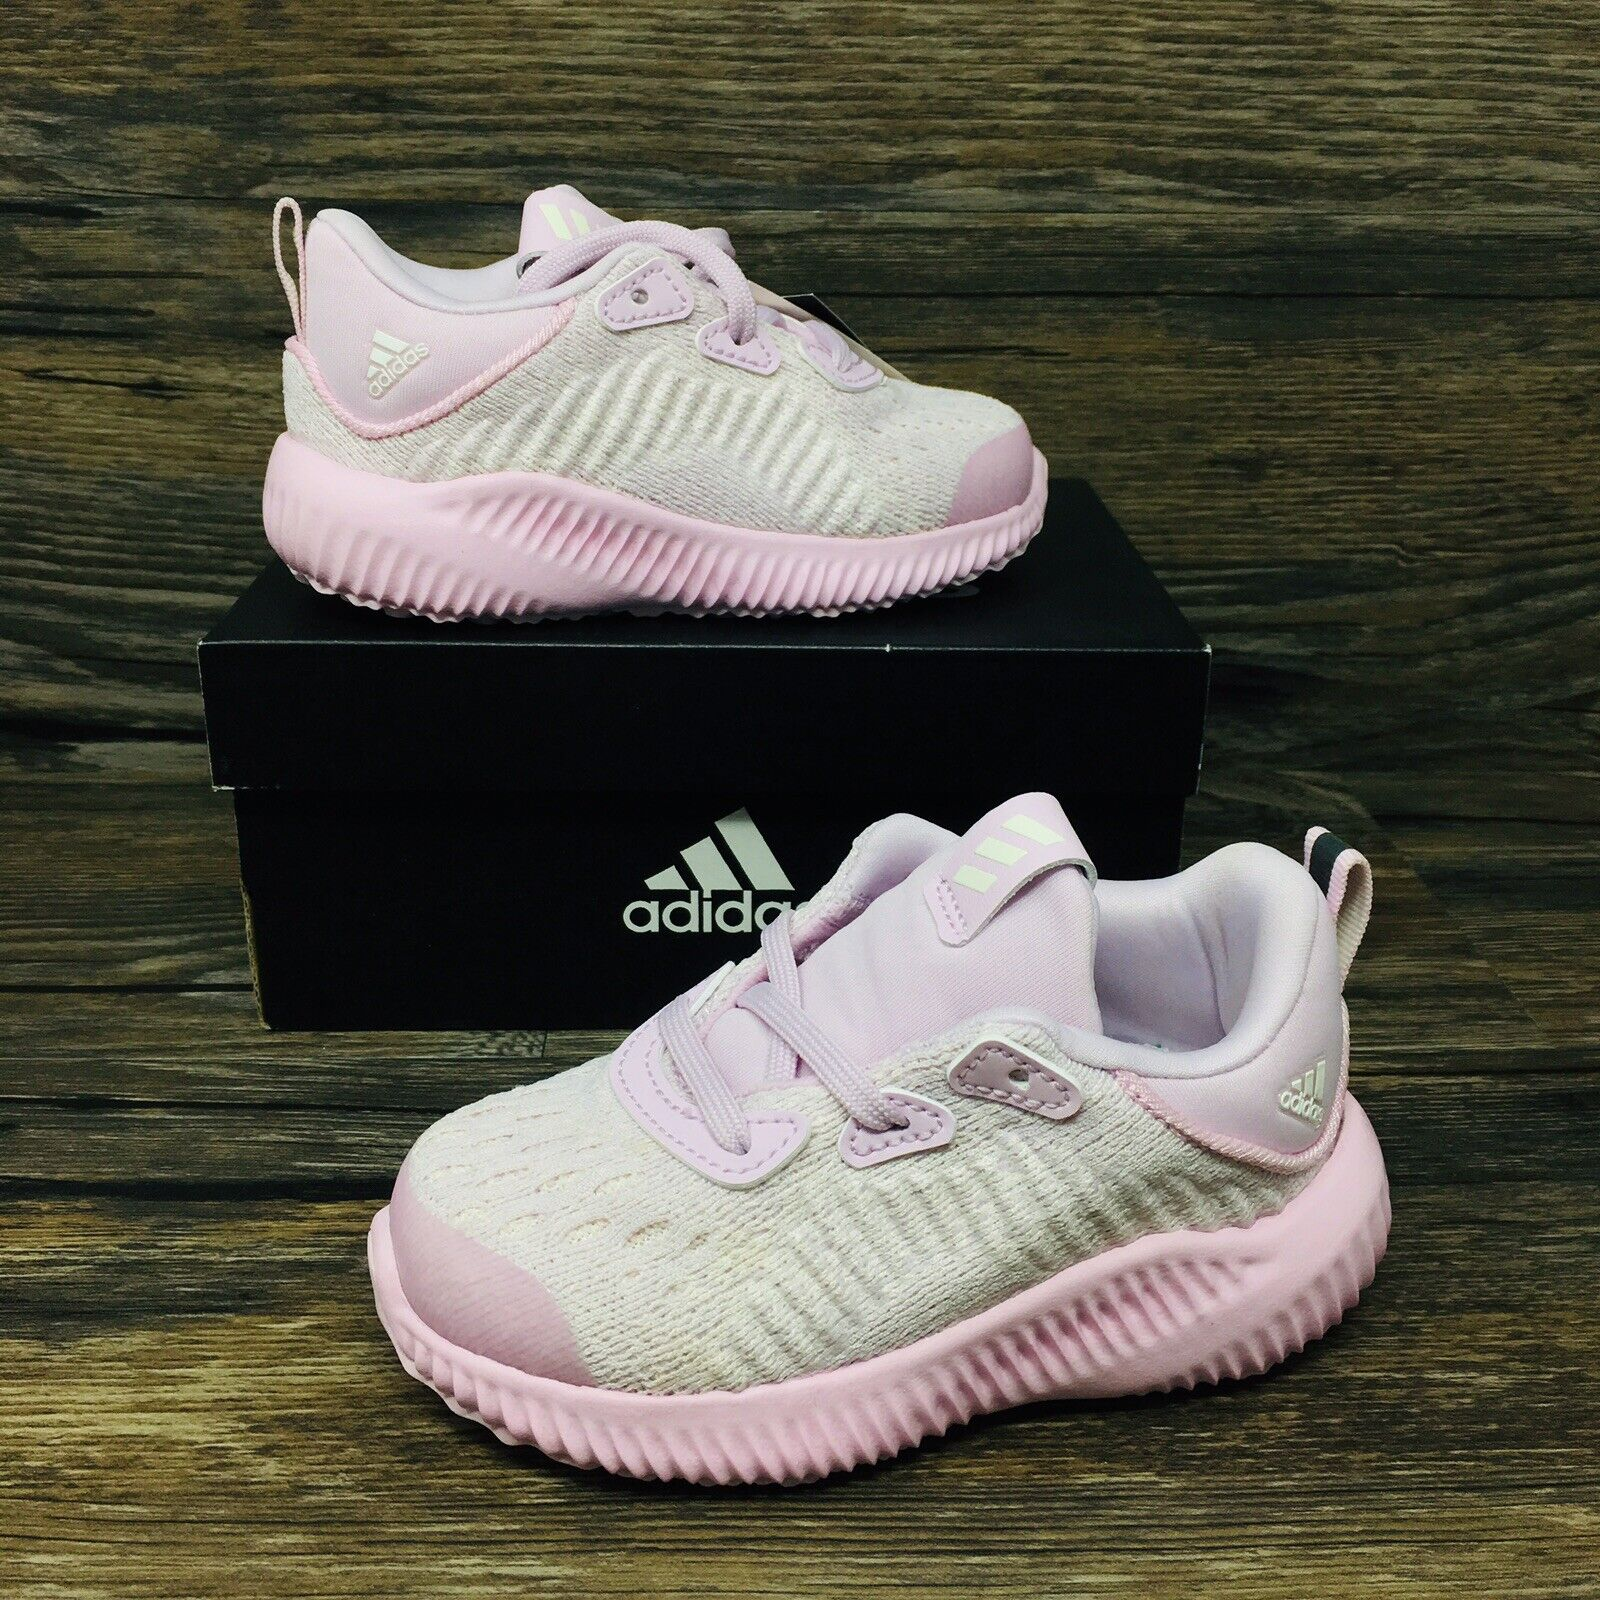 *NEW* Adidas Alphabounce EM (Toddler Size 5K) Purple/Pink Athletic Shoes